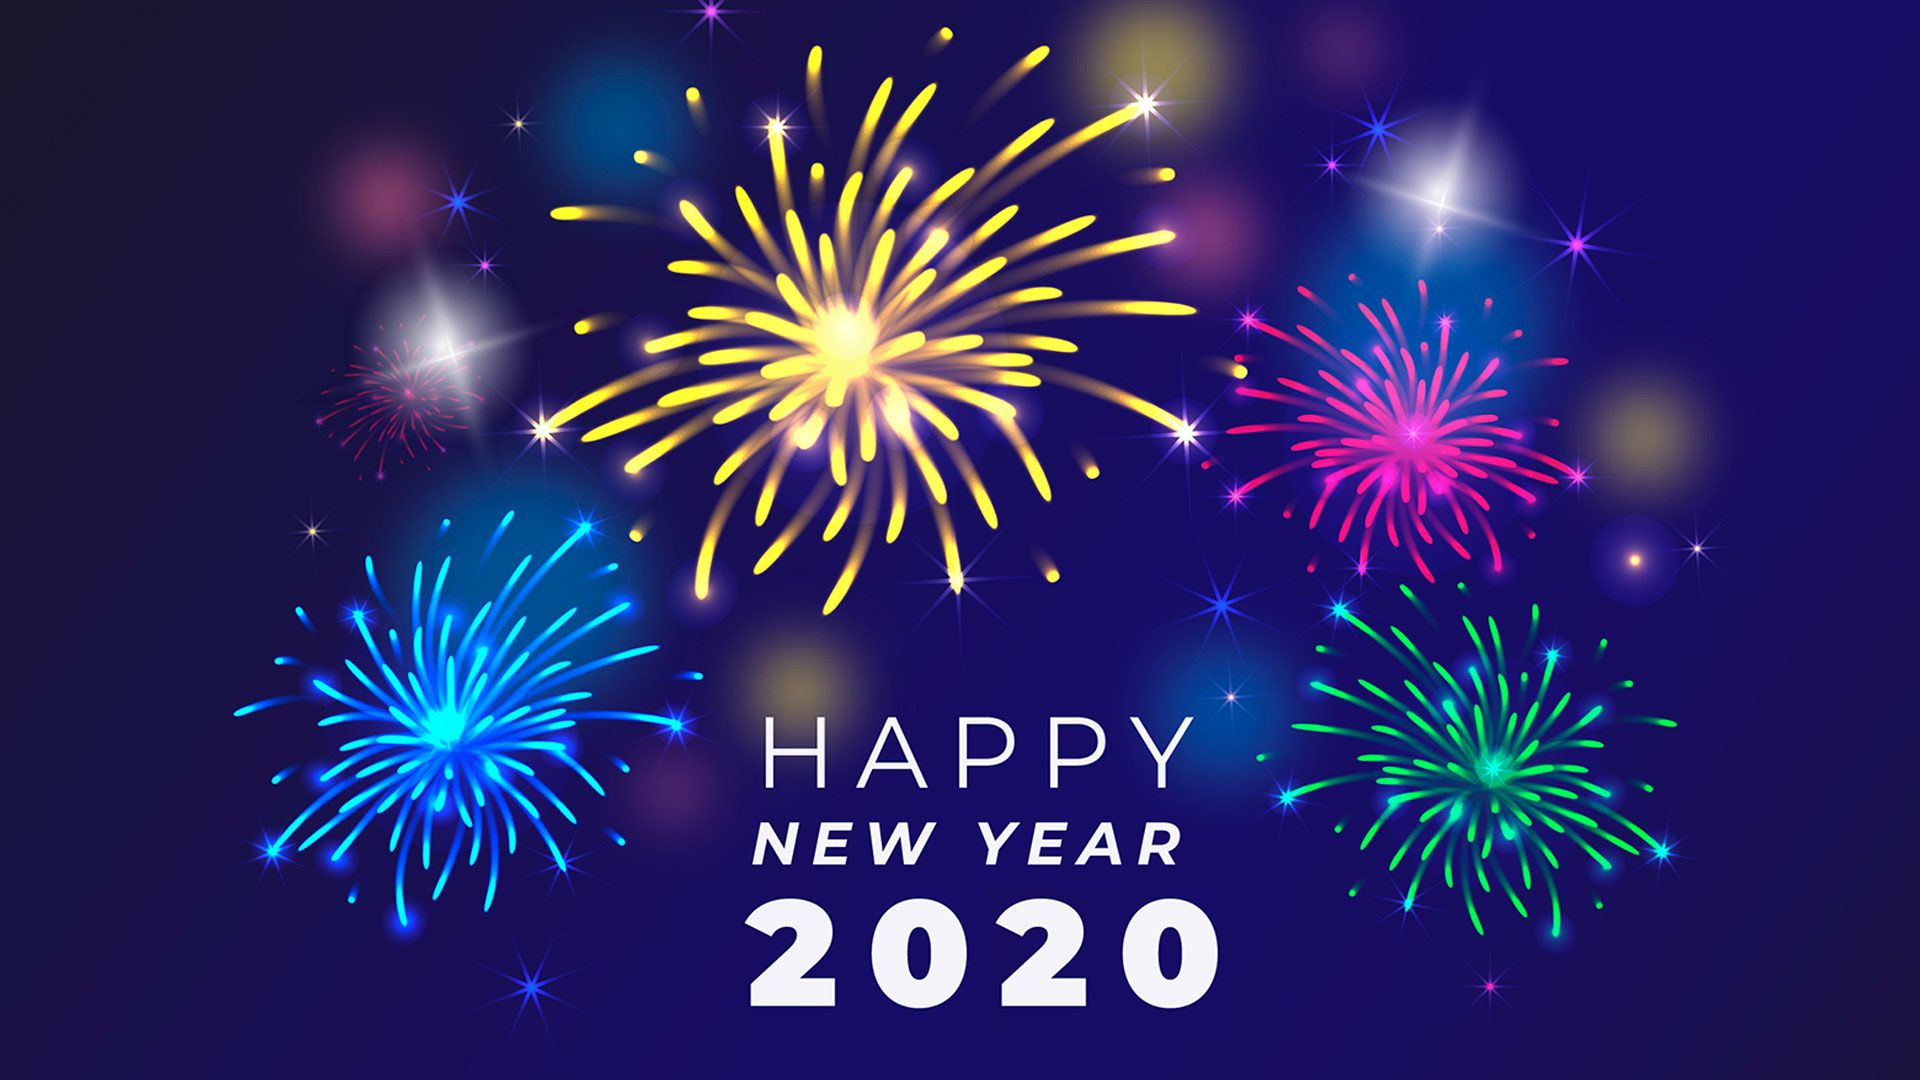 Happy New Year 2020 Sourth Carolina Happy new year